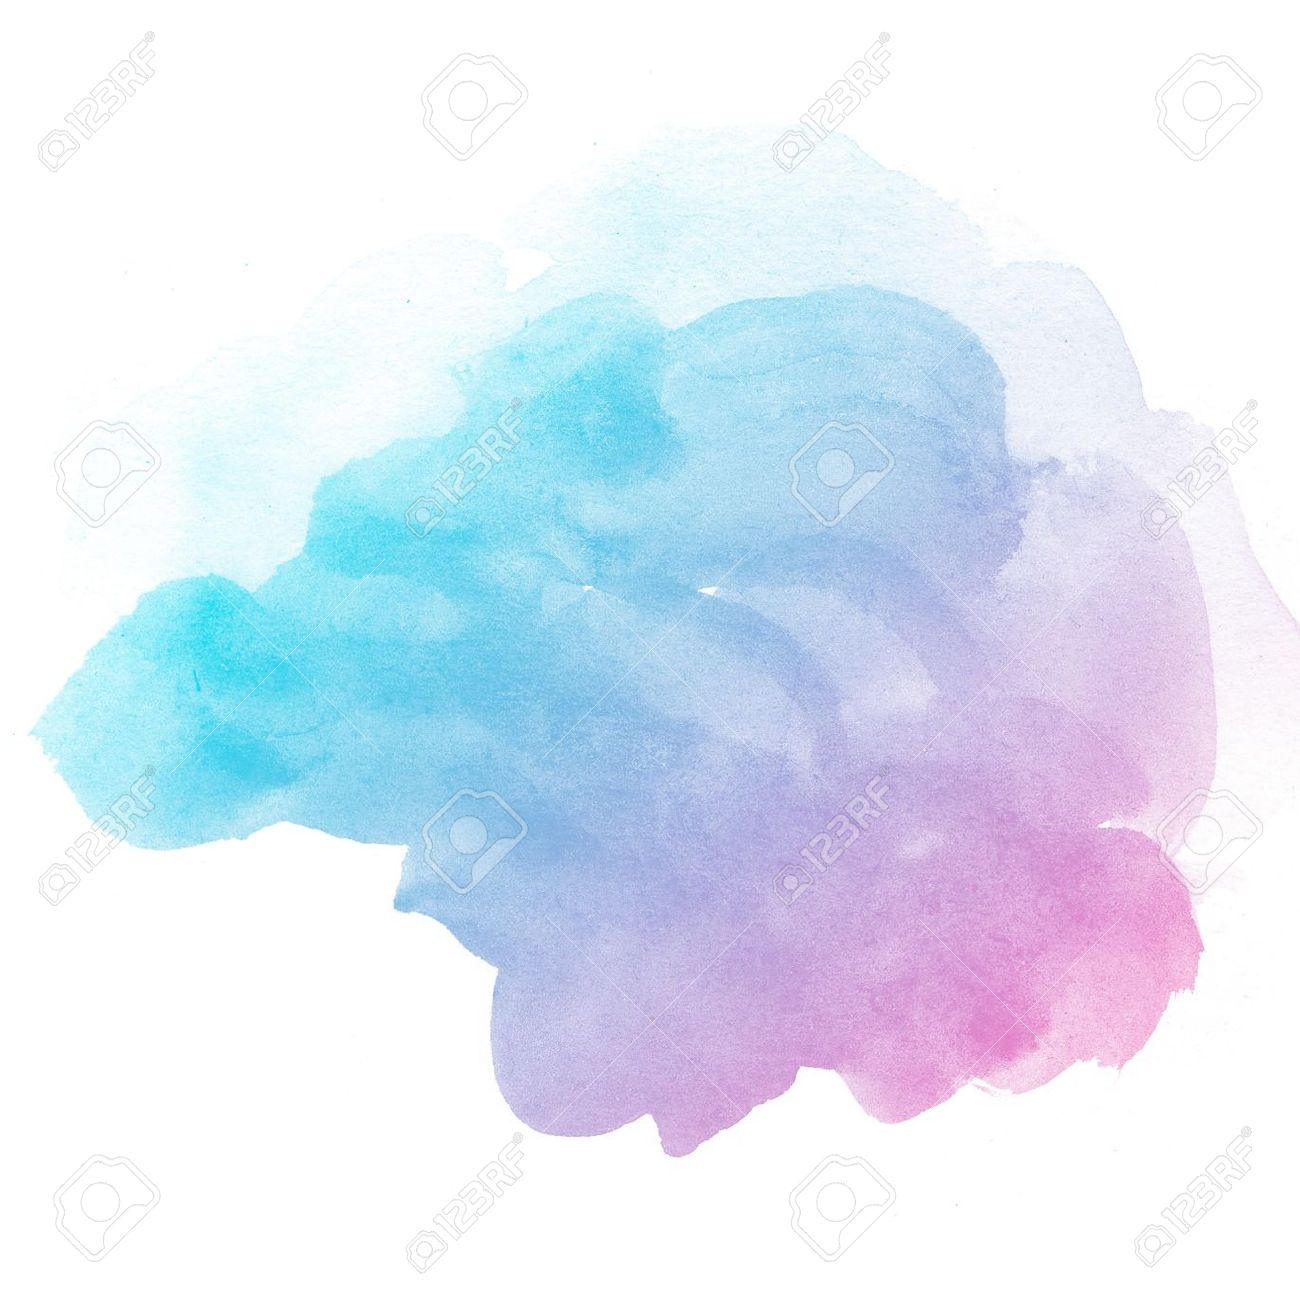 Abstract Watercolor Art Hand Paint On White Background Stock Photo 1300x1300